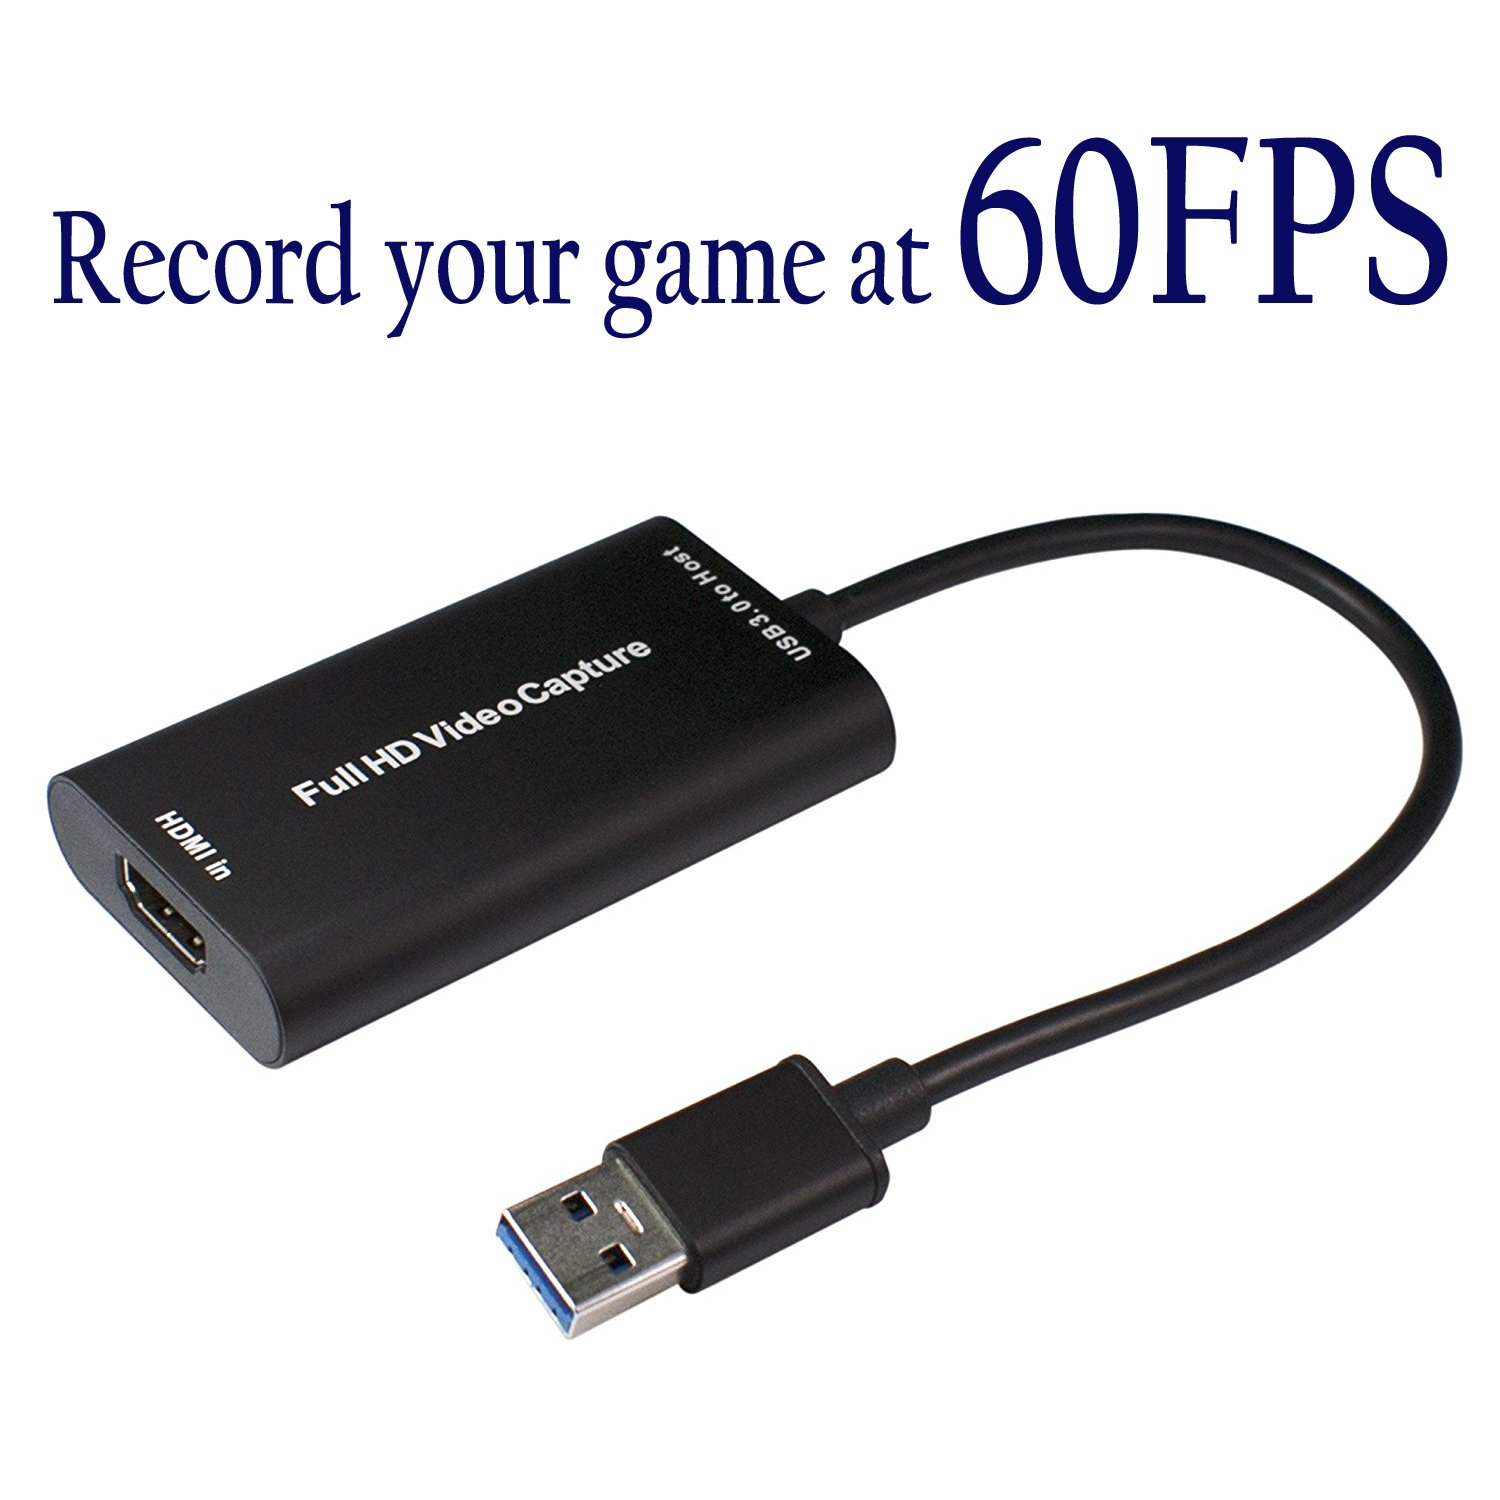 HDMI Video Capture Device USB 3.0 1080P 60 FPS Video & Audio Grabber for XBOX PS4